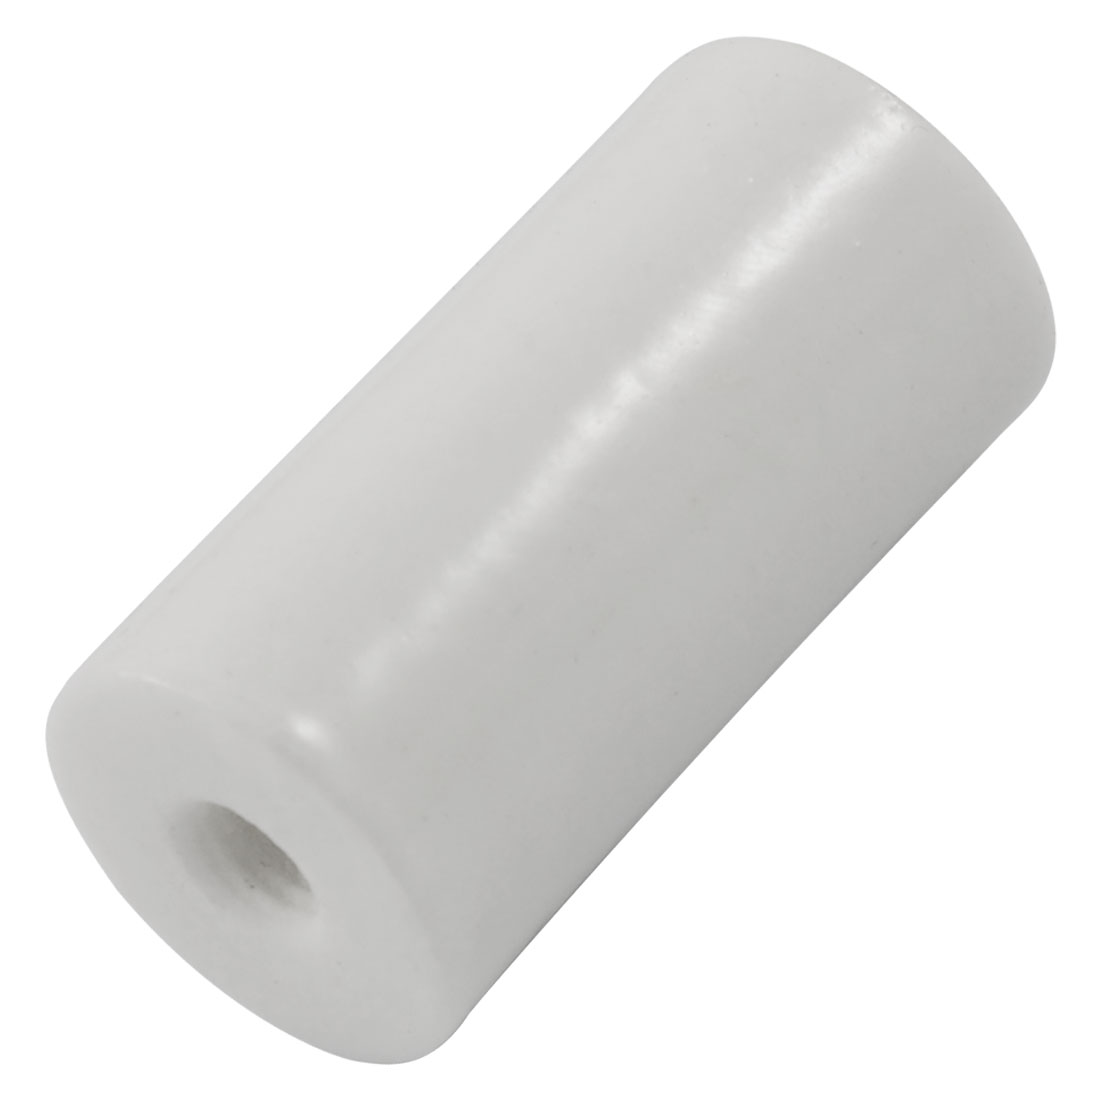 5.5mm Threaded 15mm Depth 40mm Long Stand Off Ceramic Insulator White